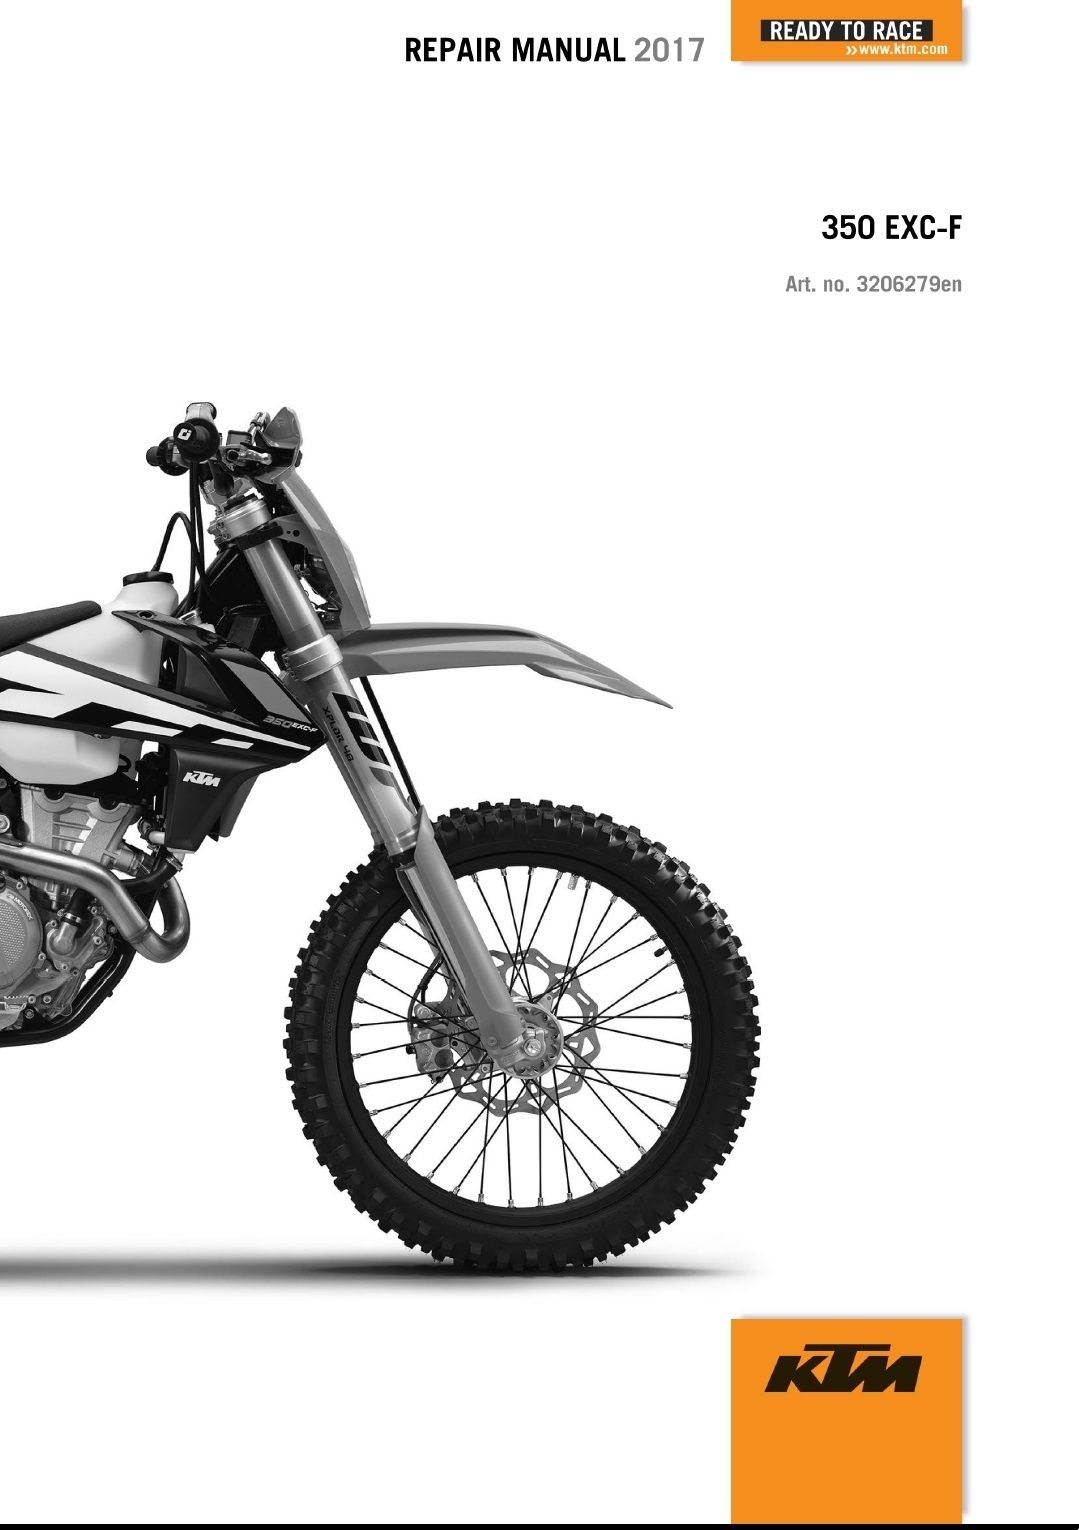 Ktm Xcf 350 Wiring Diagram - Wiring Diagrams